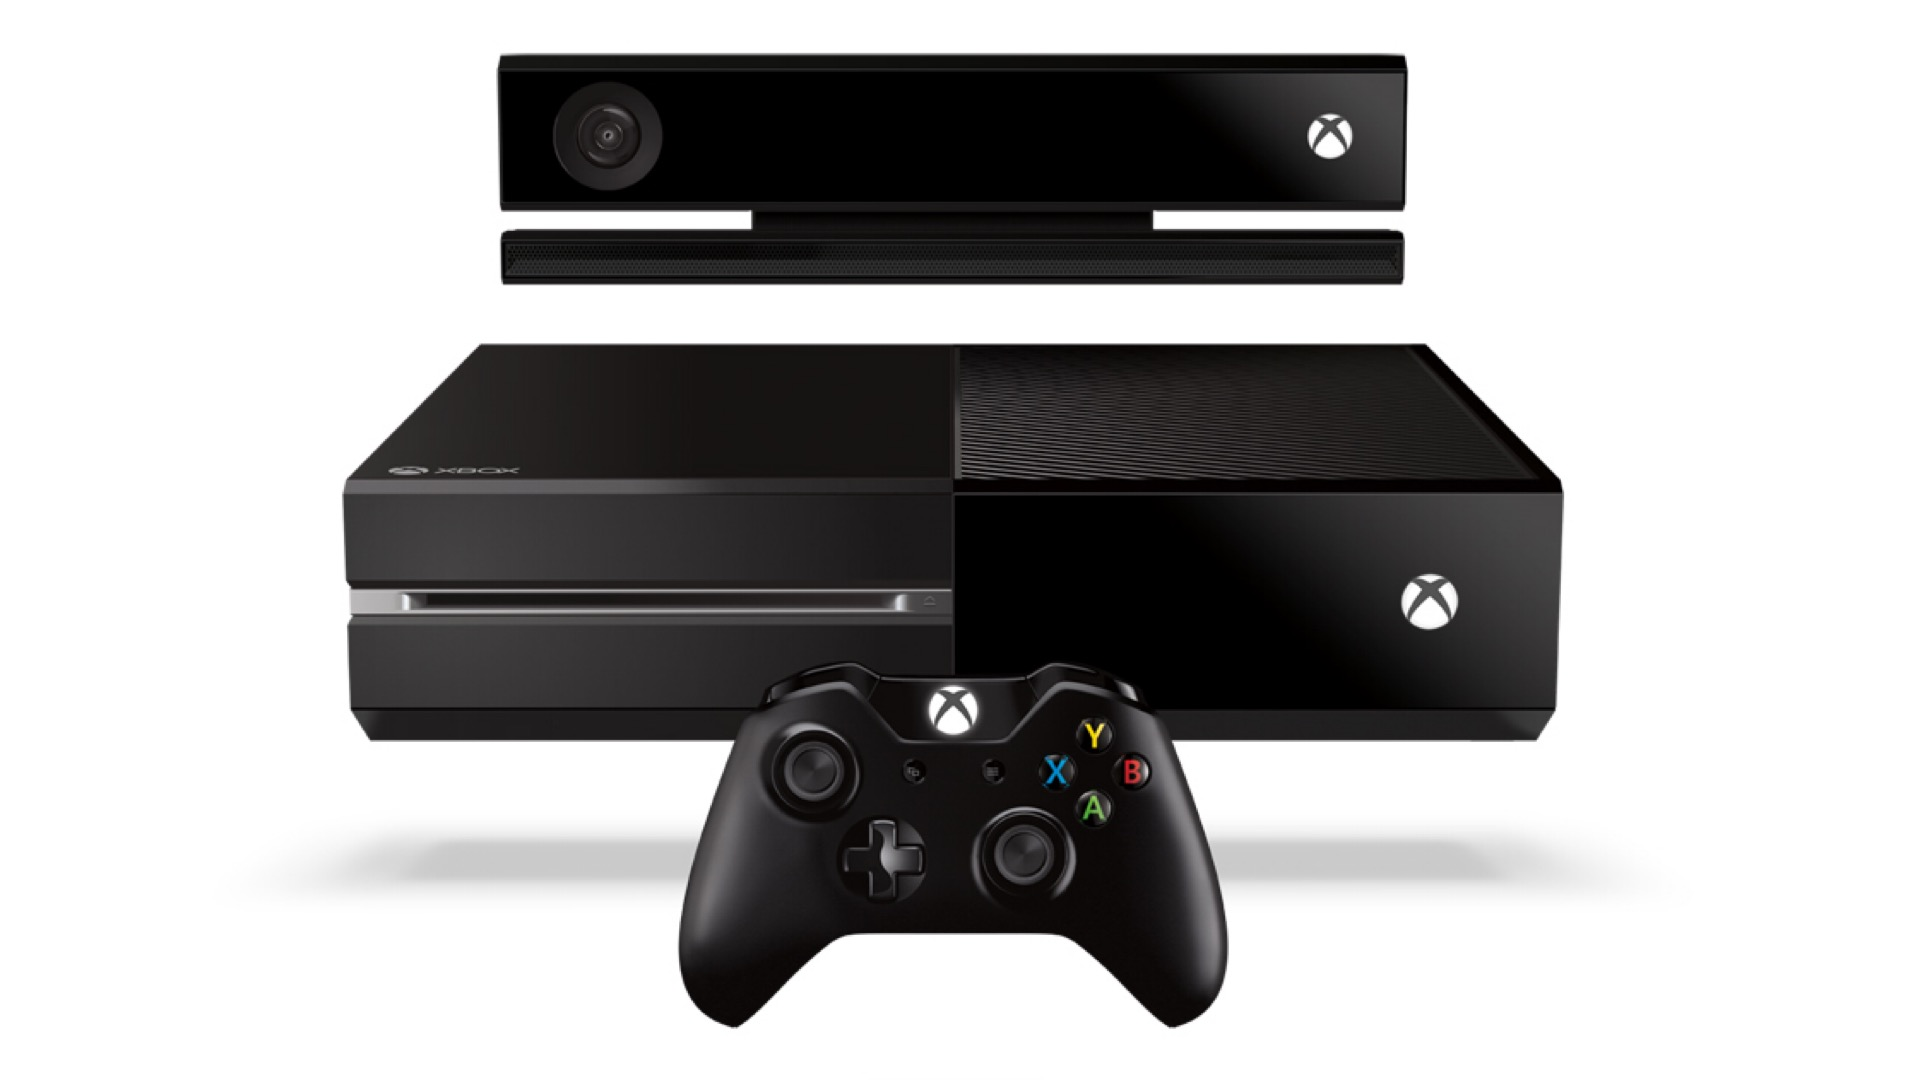 Photo of Microsoft Originally Aimed to Sell 200M Xbox One Consoles